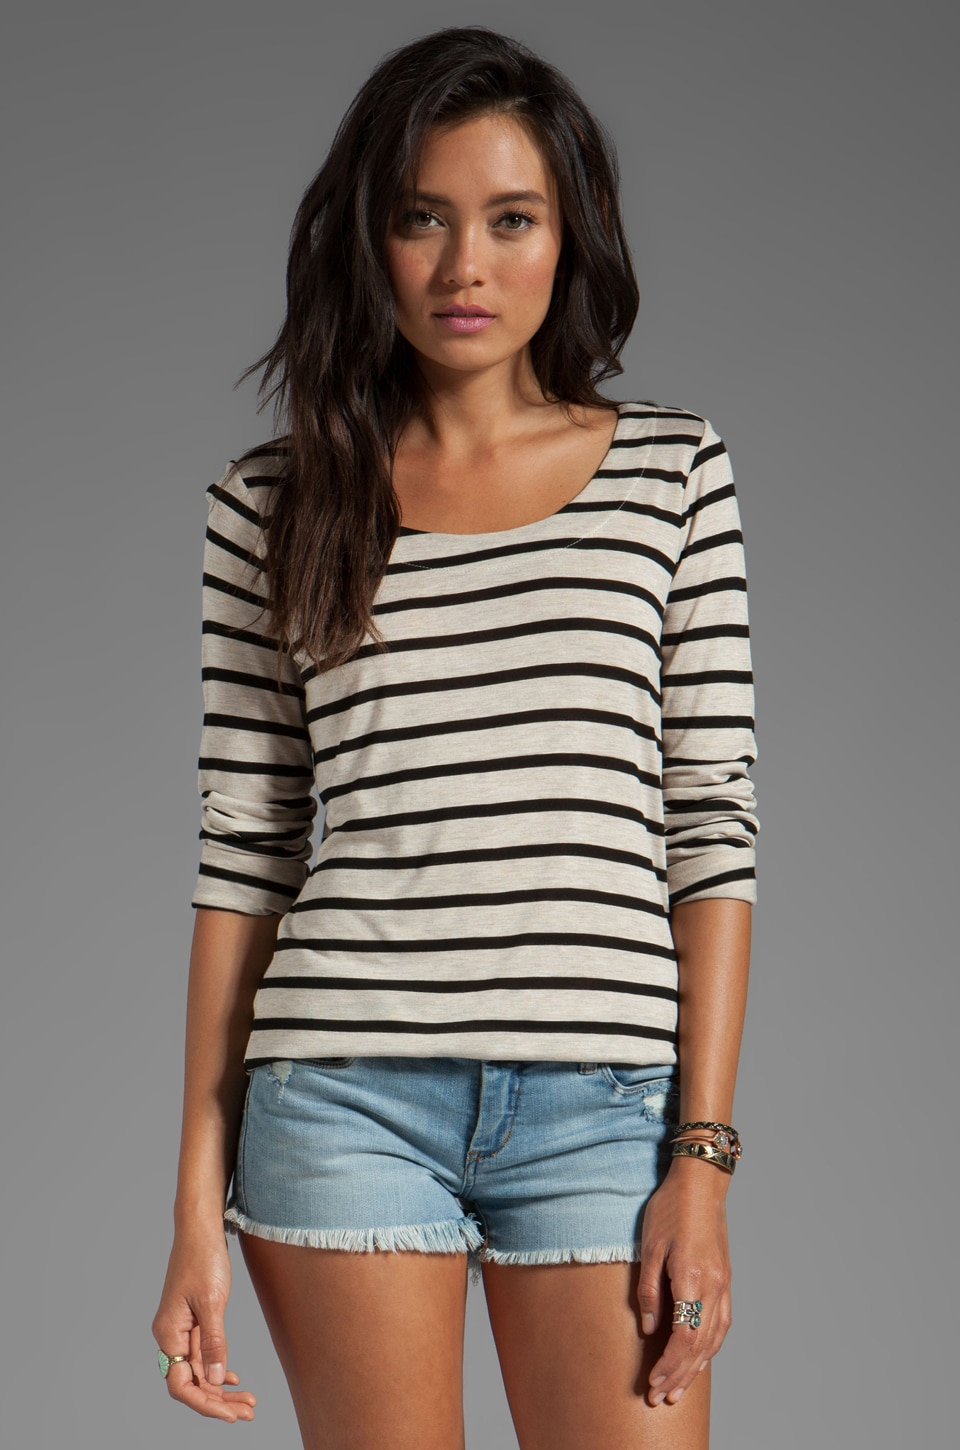 Kain Sheer Jersey Torrey Long Sleeve in Oatmeal/Black Stripe